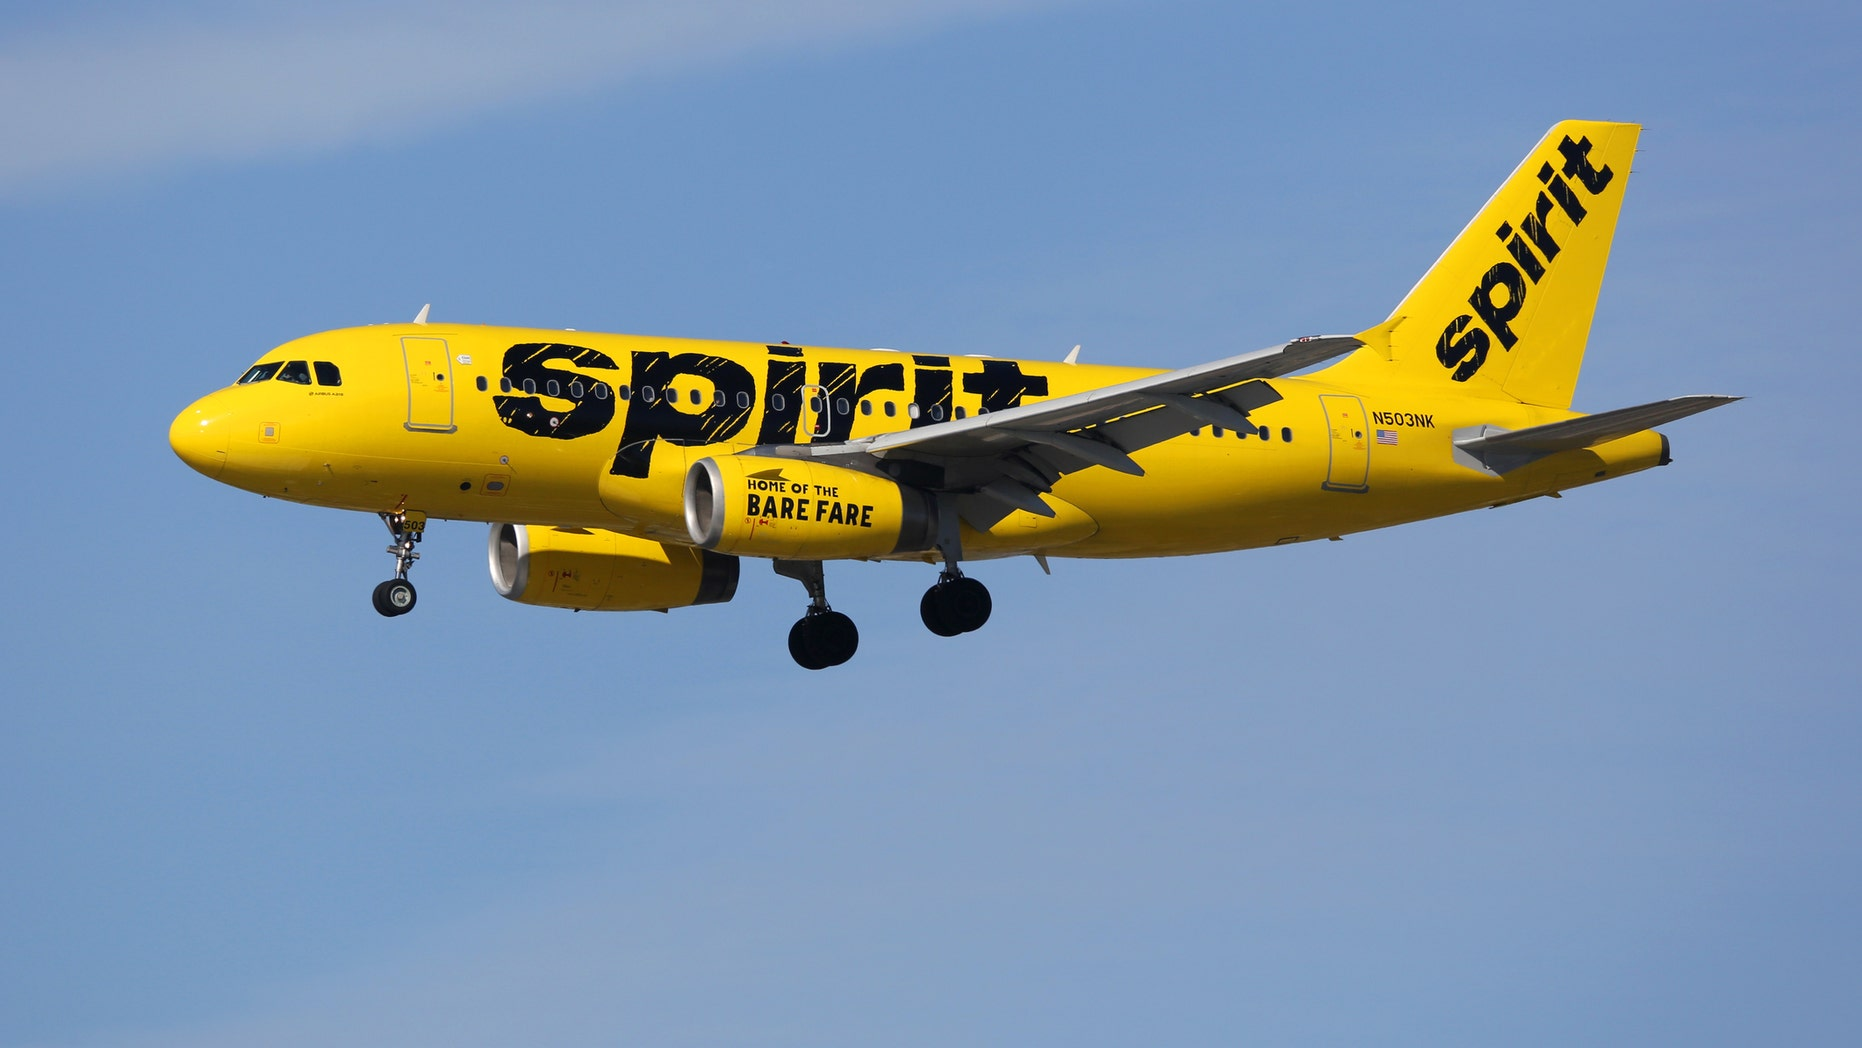 Los Angeles, United States - February 19, 2016: A Spirit Airlines Airbus A319 with the registration N503NK landing at Los Angeles International Airport (LAX) in the United States. Spirit Airlines is an American low-cost airline with its headquarters in Fort Lauderdale.